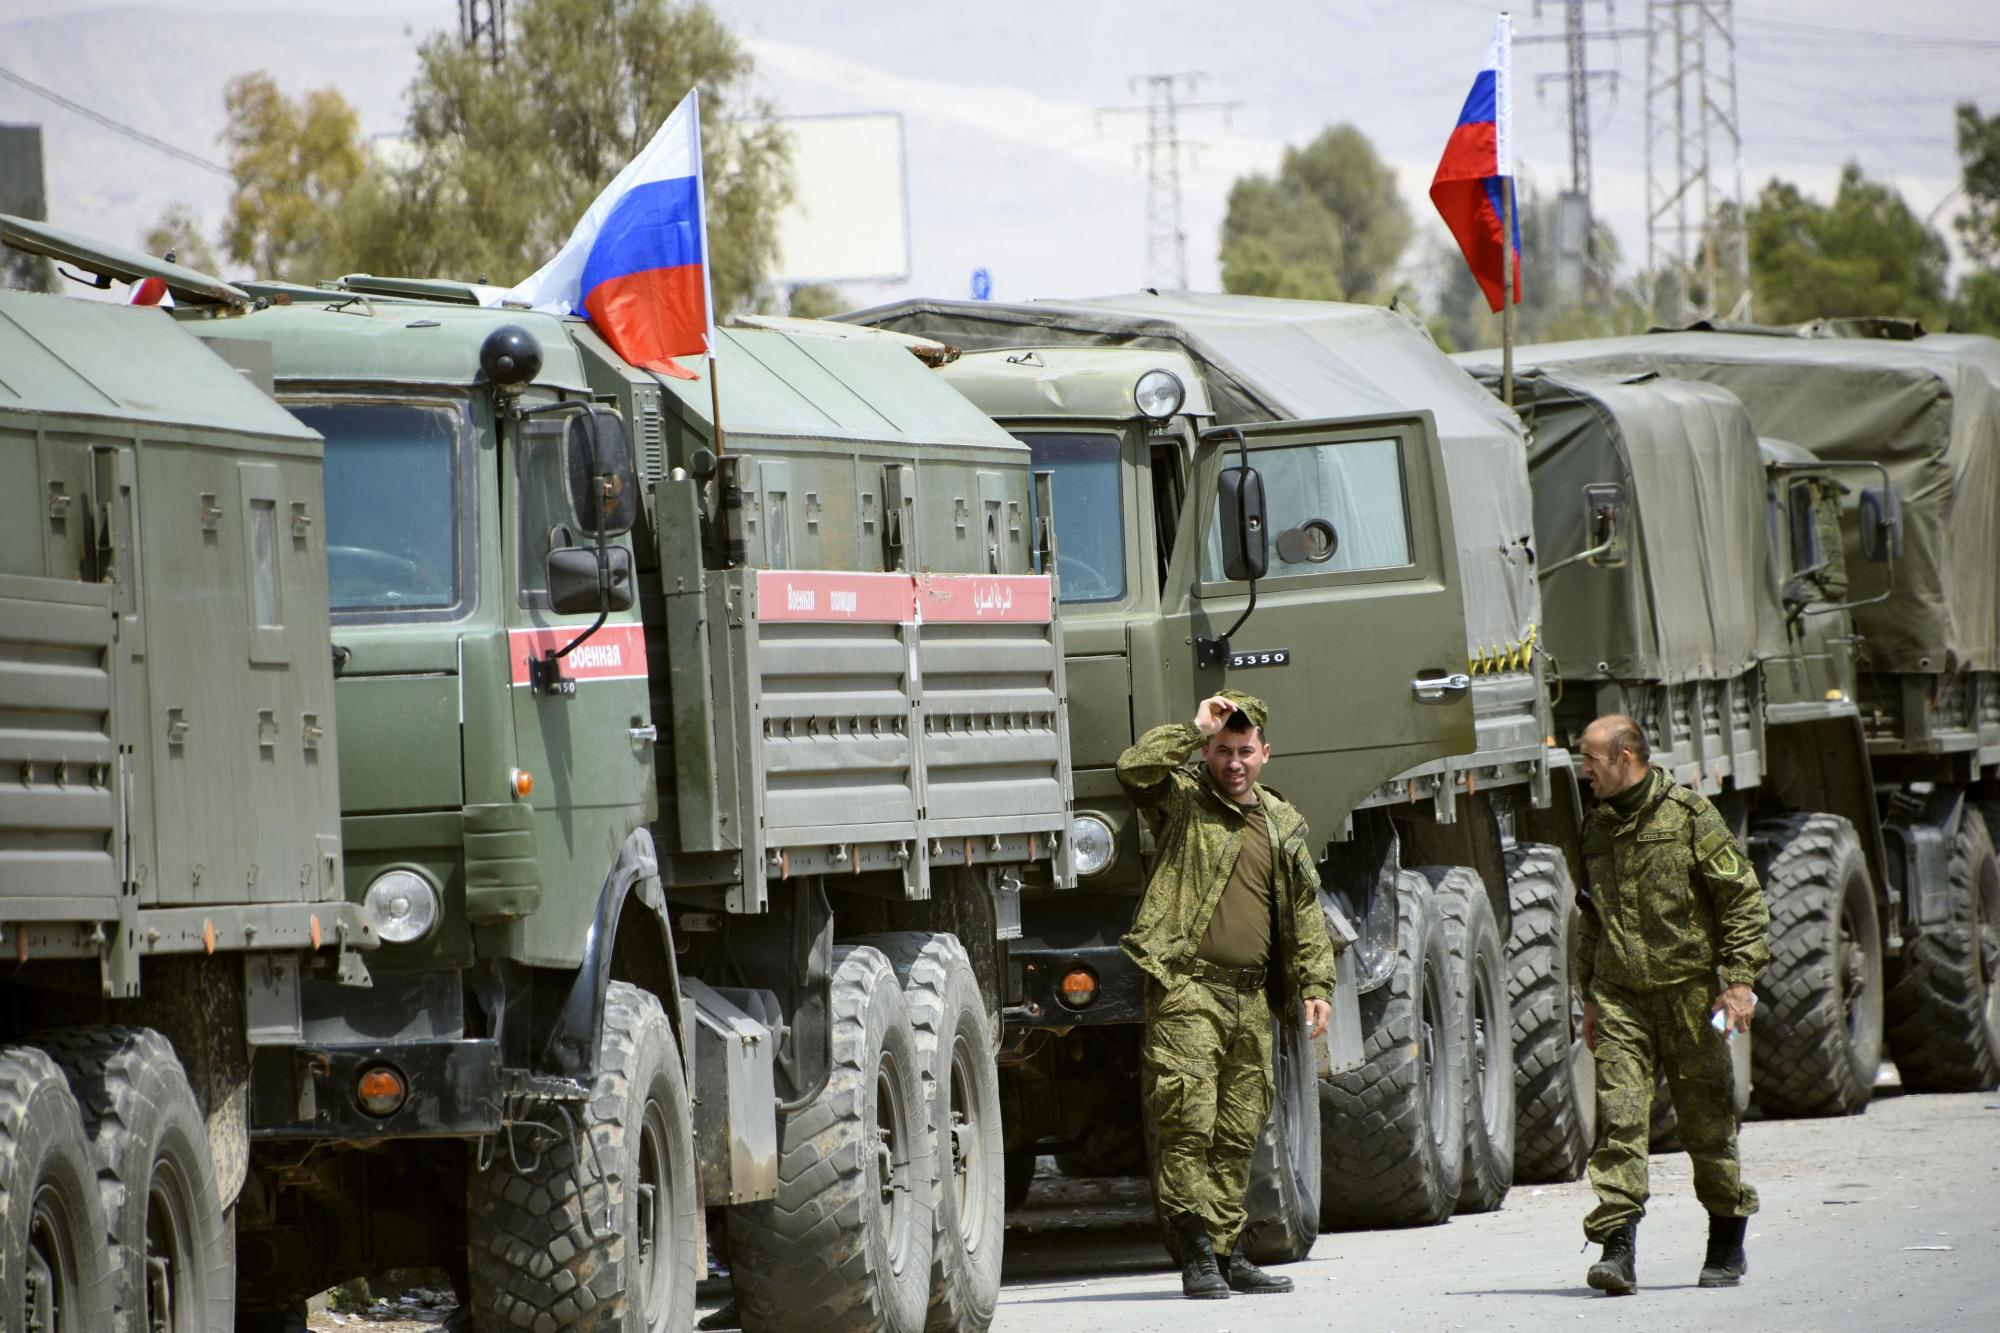 Russian military police officers stationed in the eastern Ghouta near Damascus, in Syria, are seen on Thursday. | KYODO